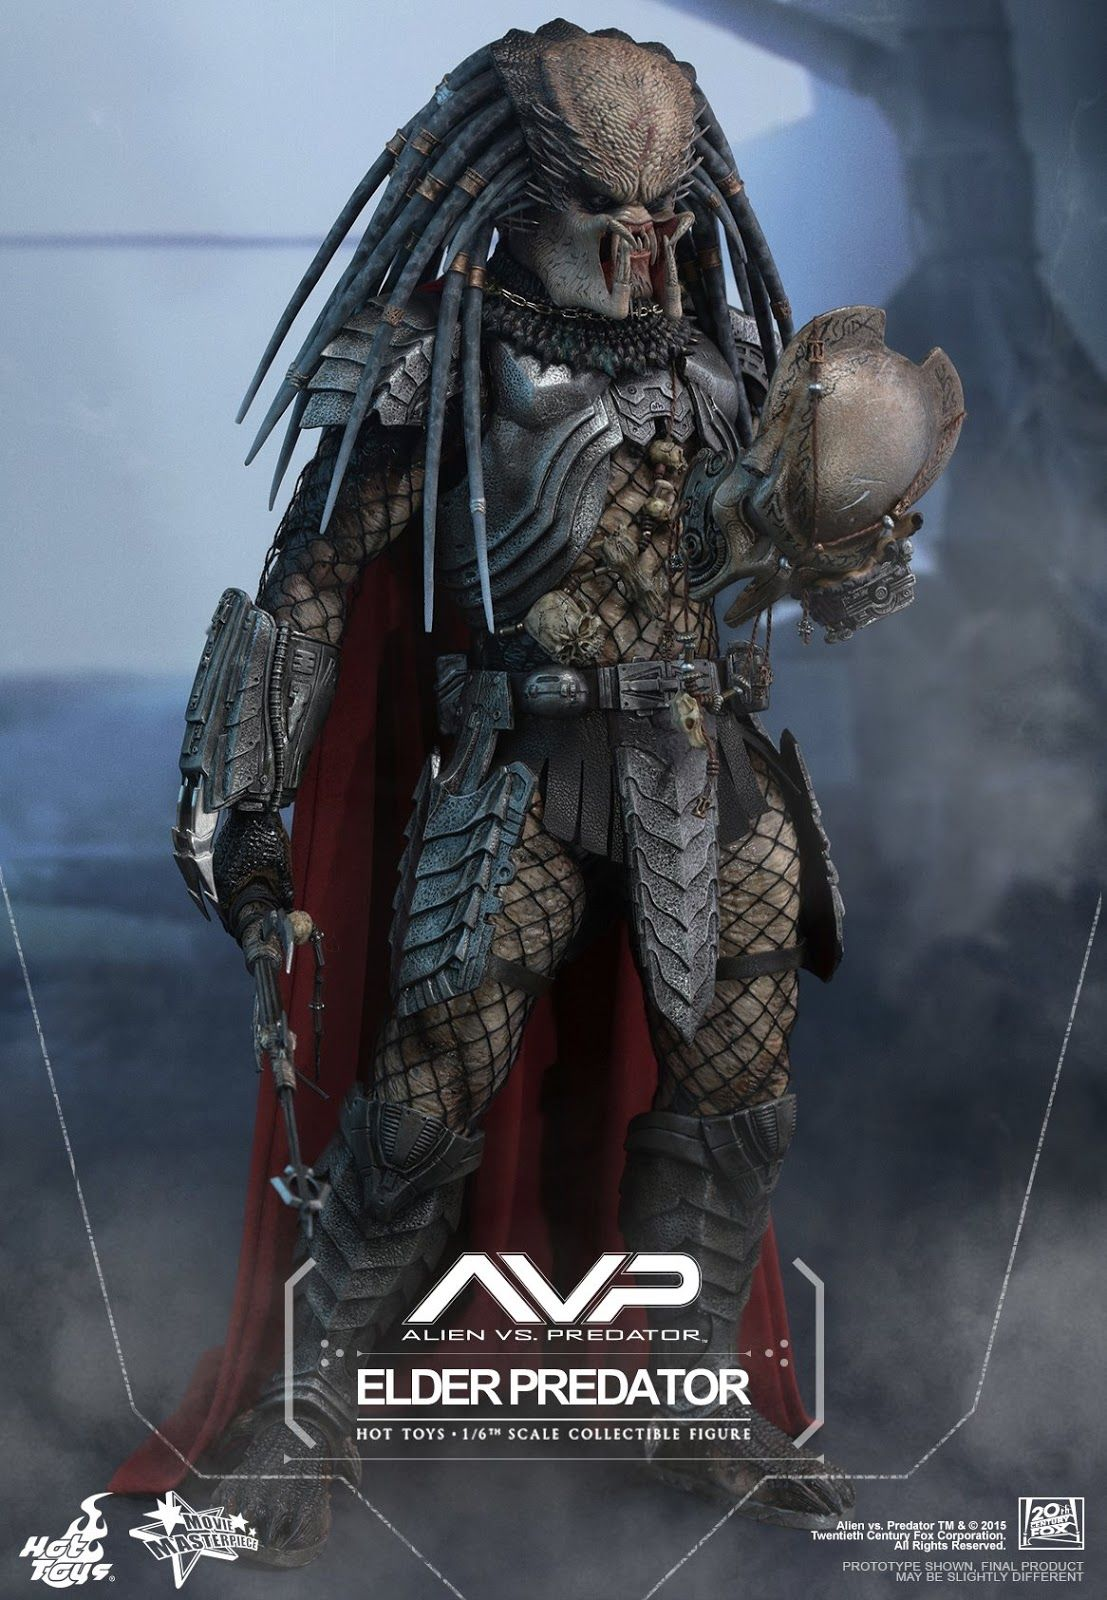 toyhaven: Preview Hot Toys MMS325 AVP (Alien Vs. Predator) 1/6th Elder Predator Collectible Figure